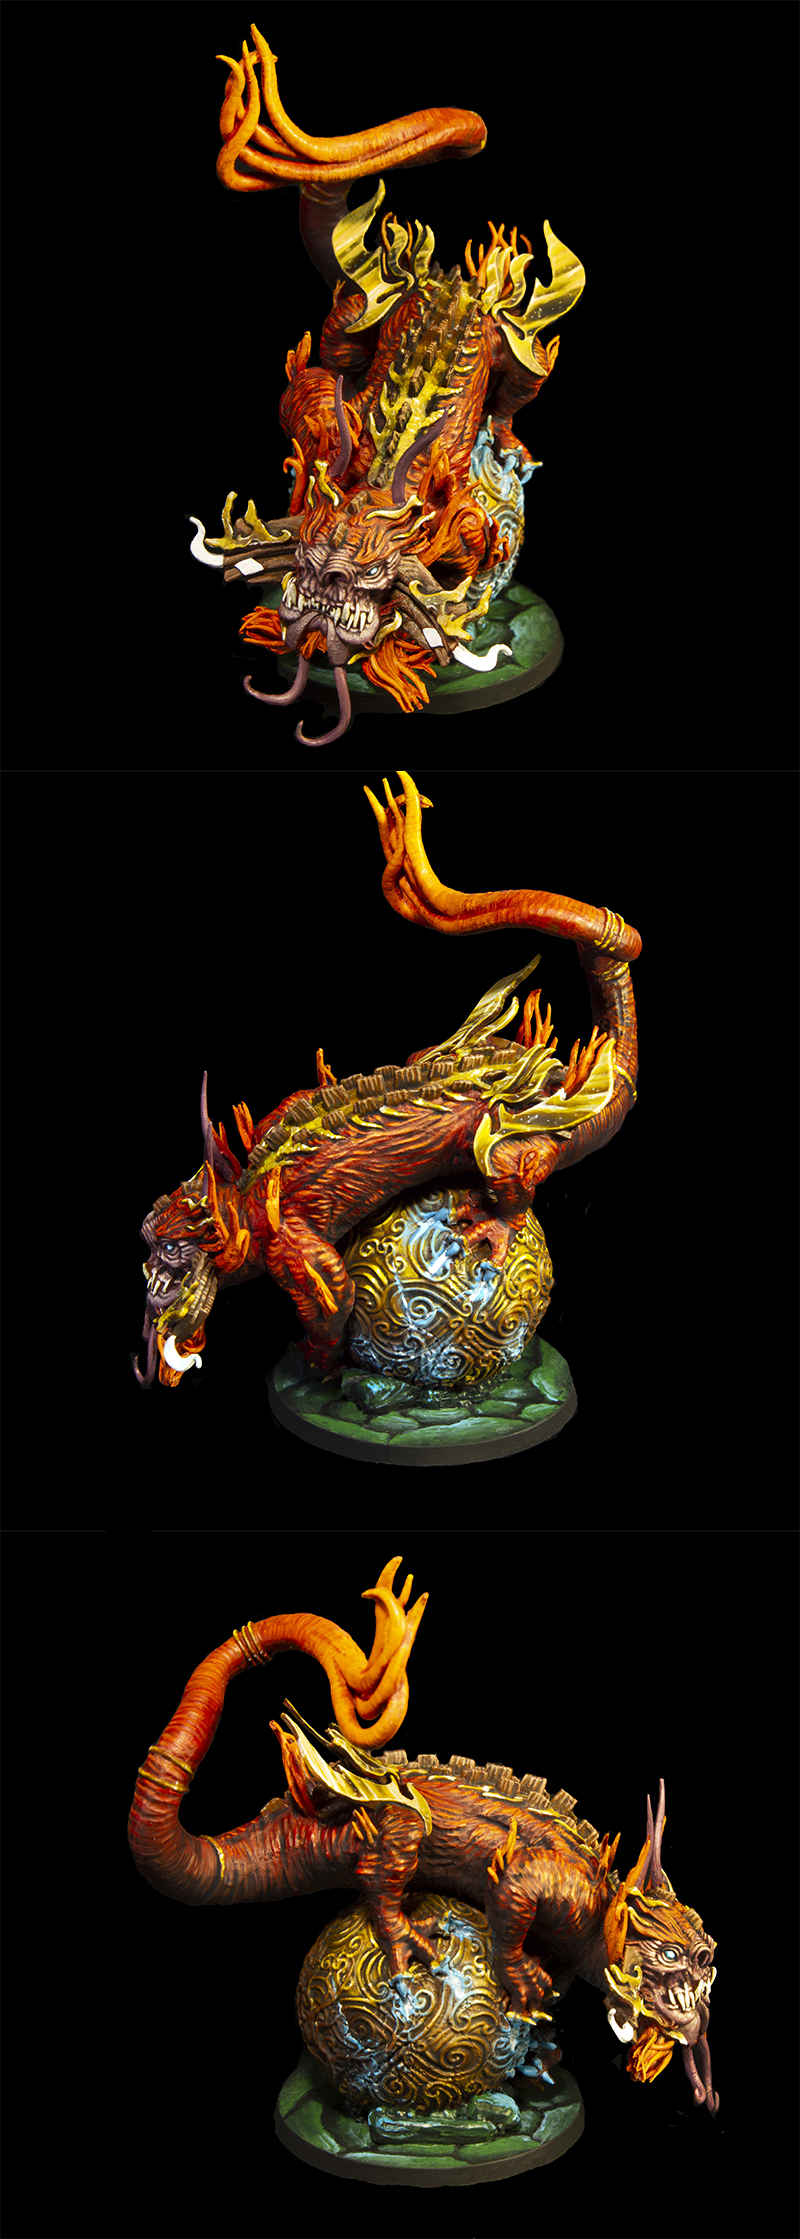 The Fire Dragon from Rising Sun boardgame